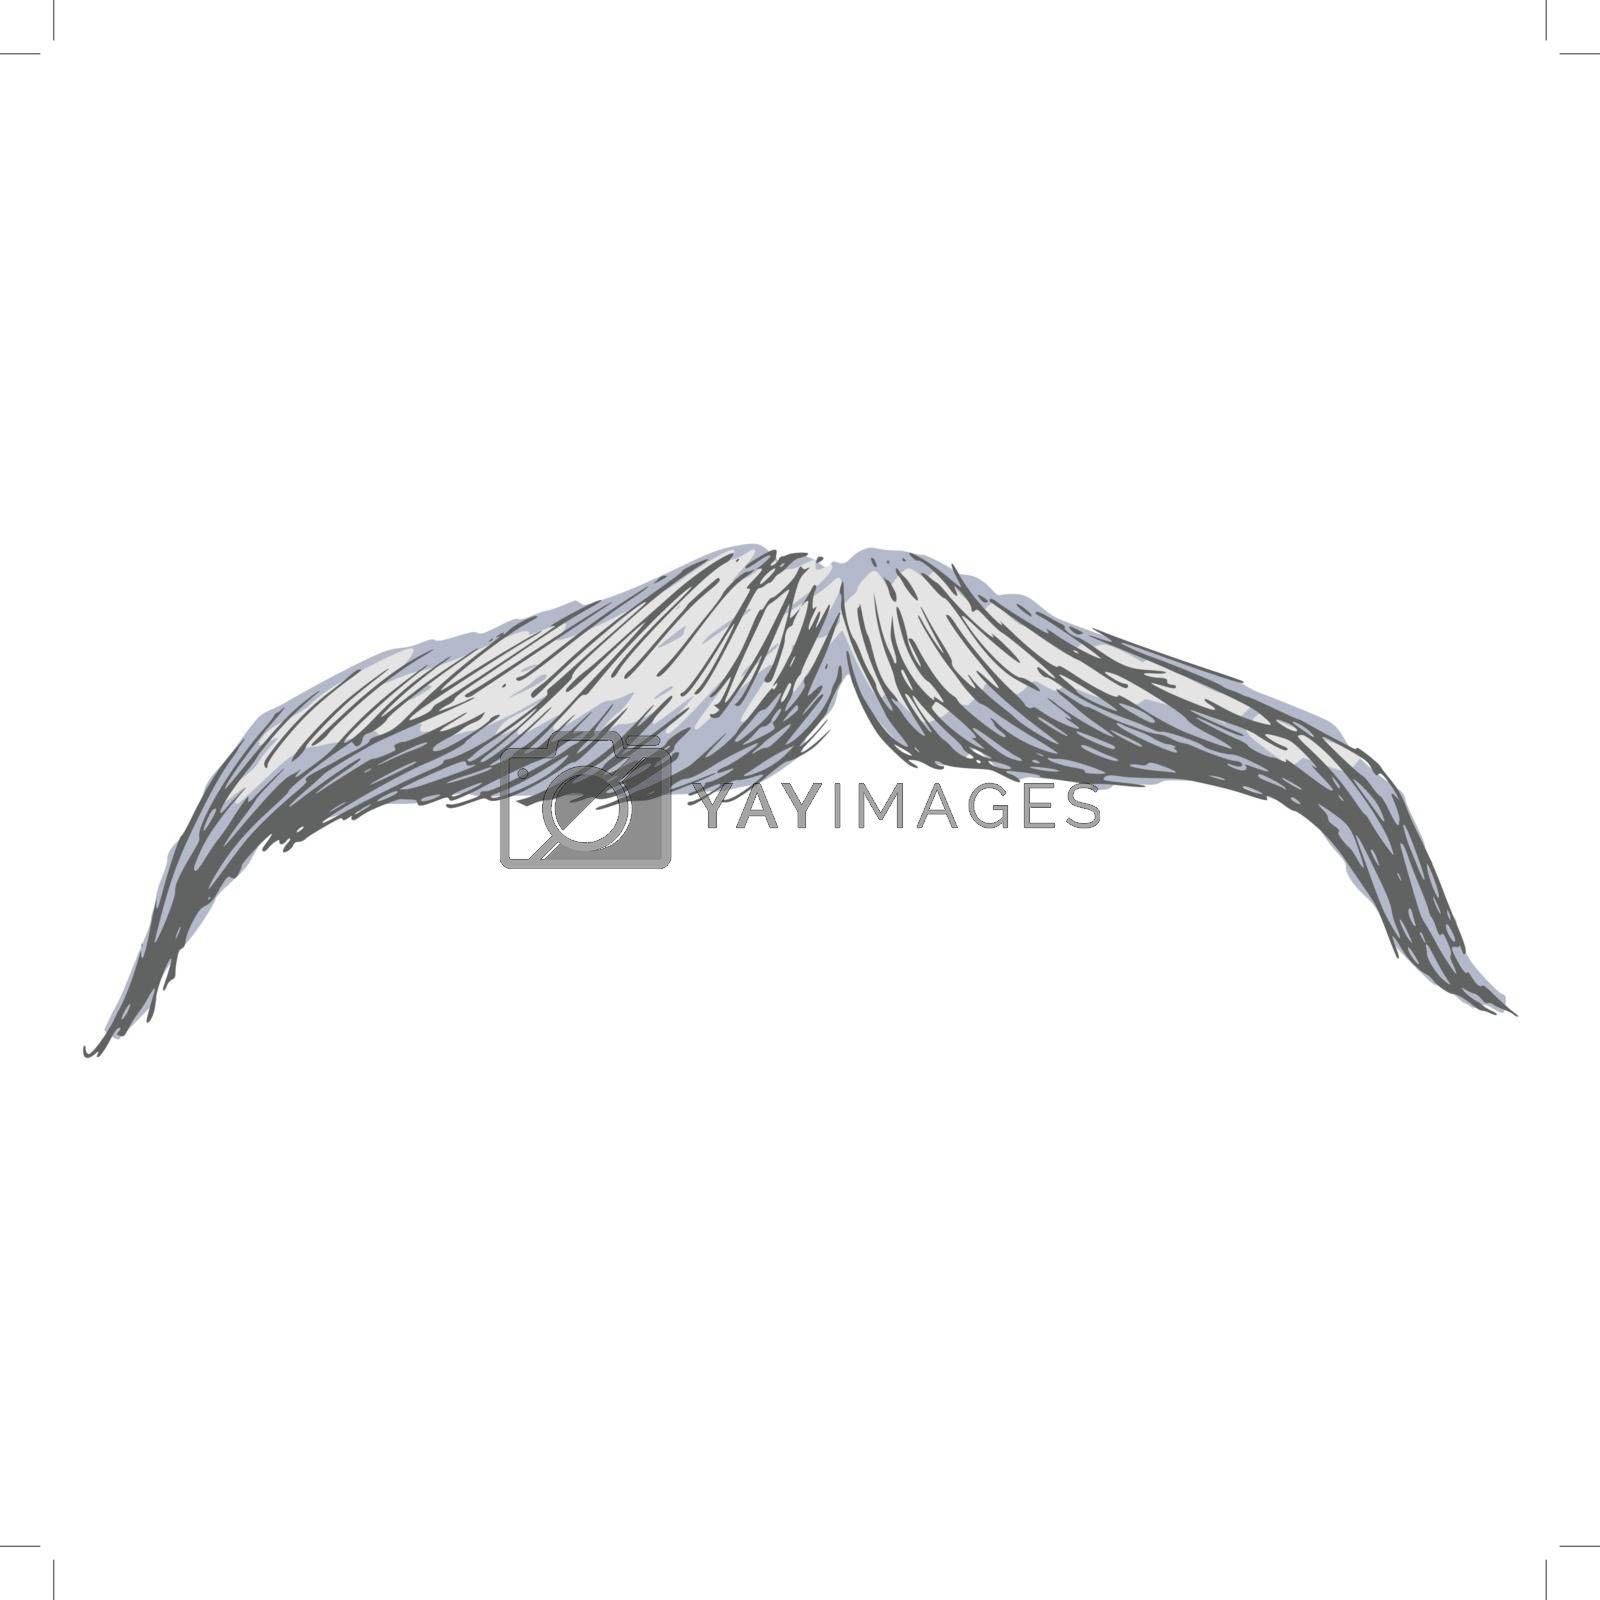 hand drawn, sketch, cartoon illustration of moustache